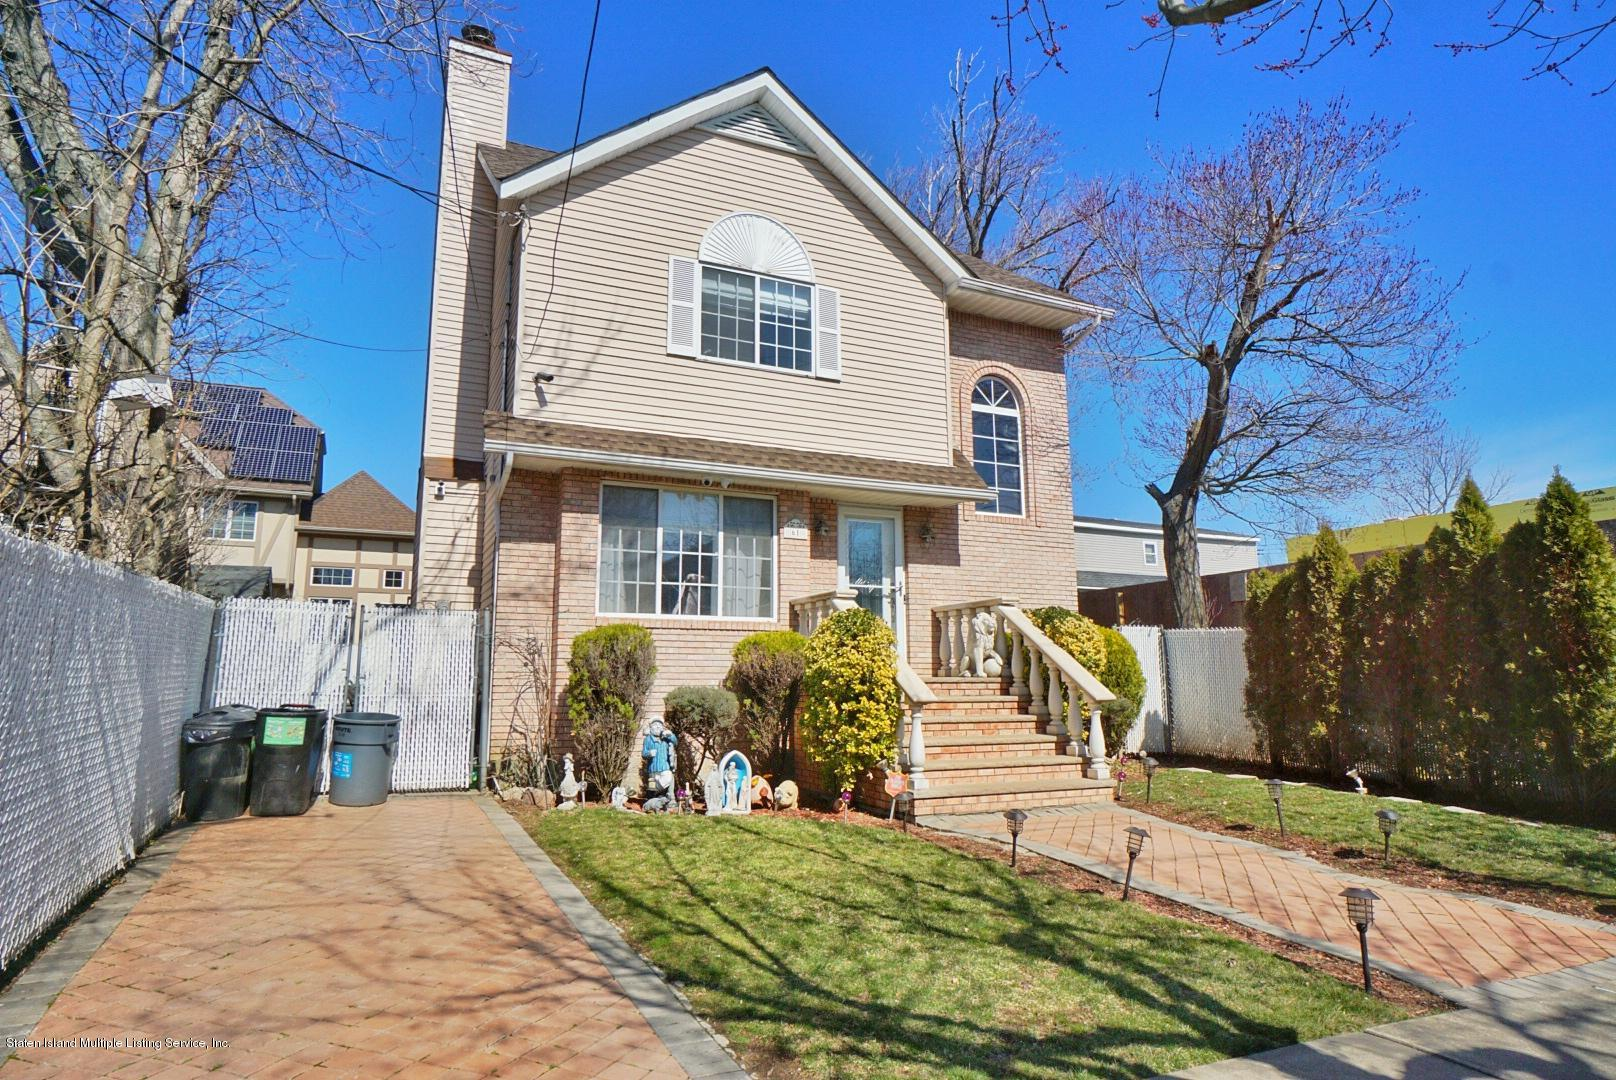 Single Family - Detached 61 Billop Avenue  Staten Island, NY 10307, MLS-1136391-2